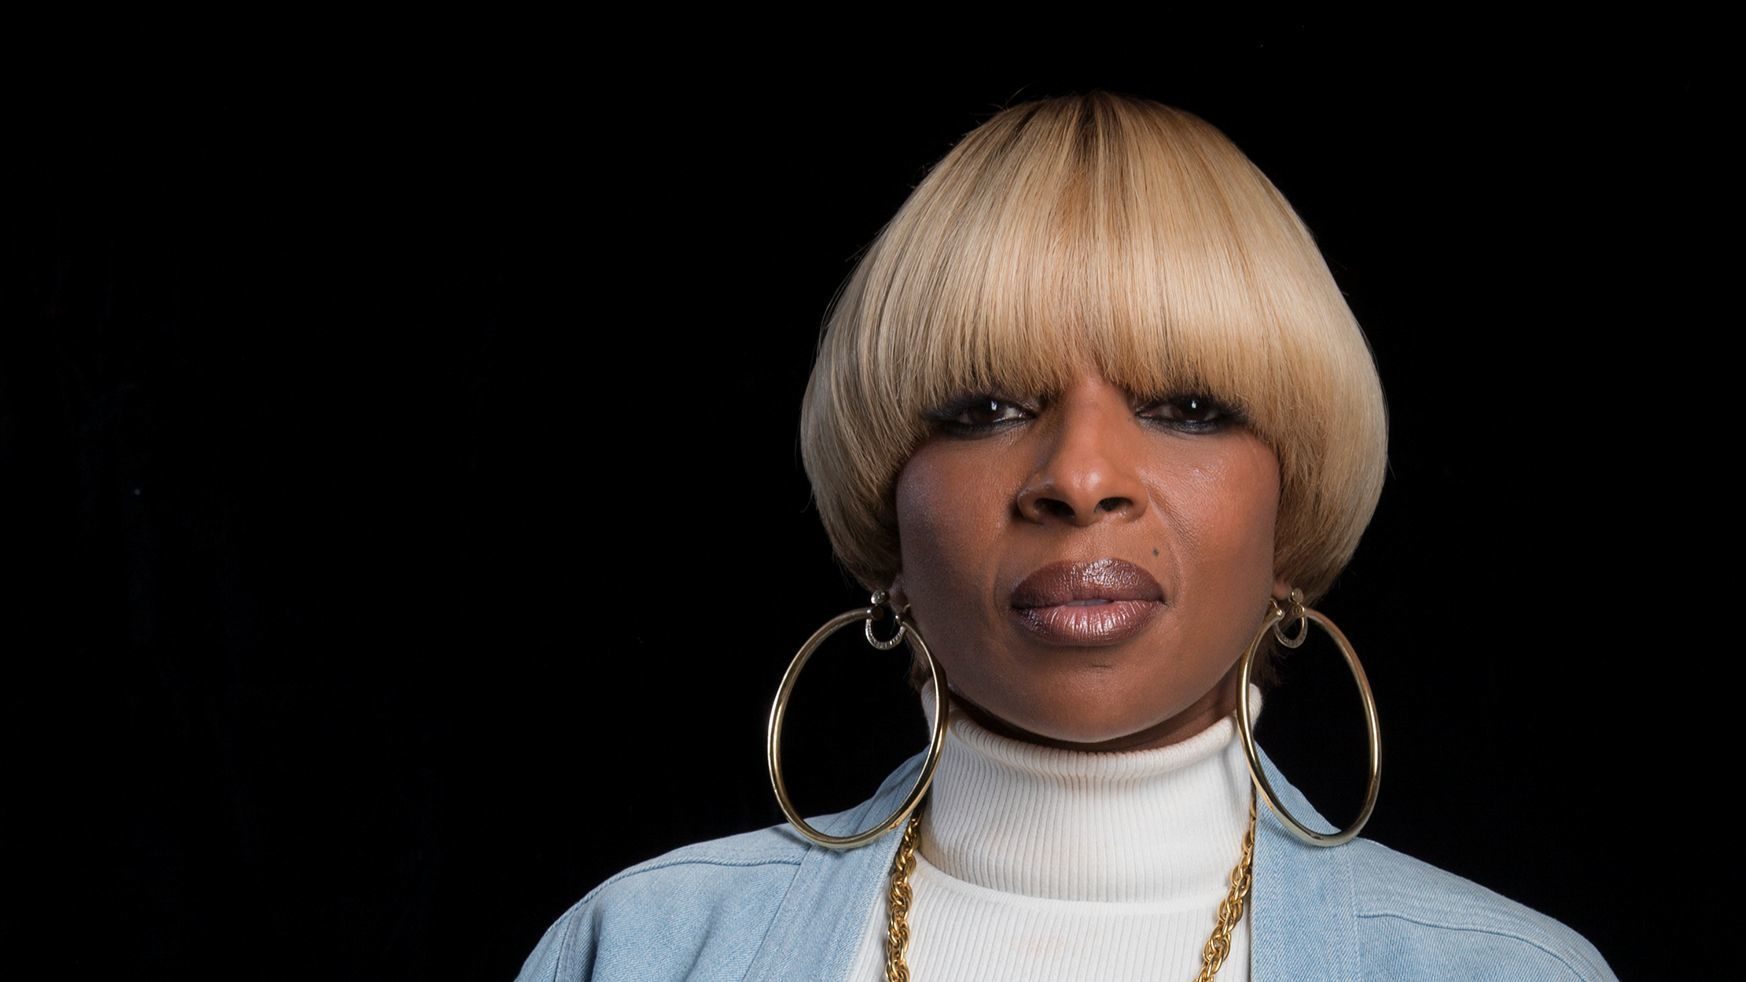 Mary J. Blige has confronted heartbreak, addiction, toxic relationships and self-hatred in her music. Now she's tackling divorce.